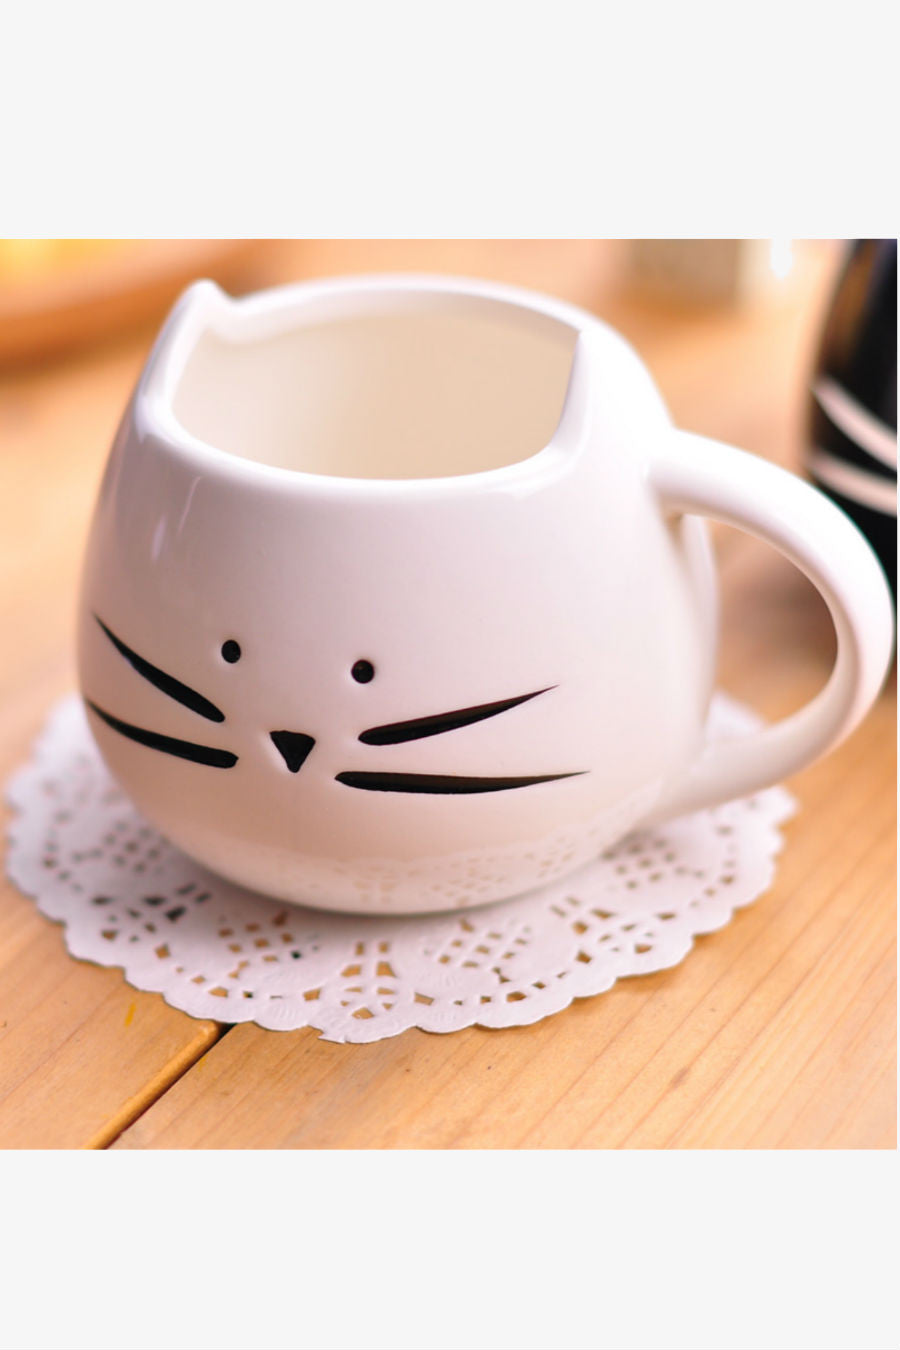 Cute White Kitten Mug